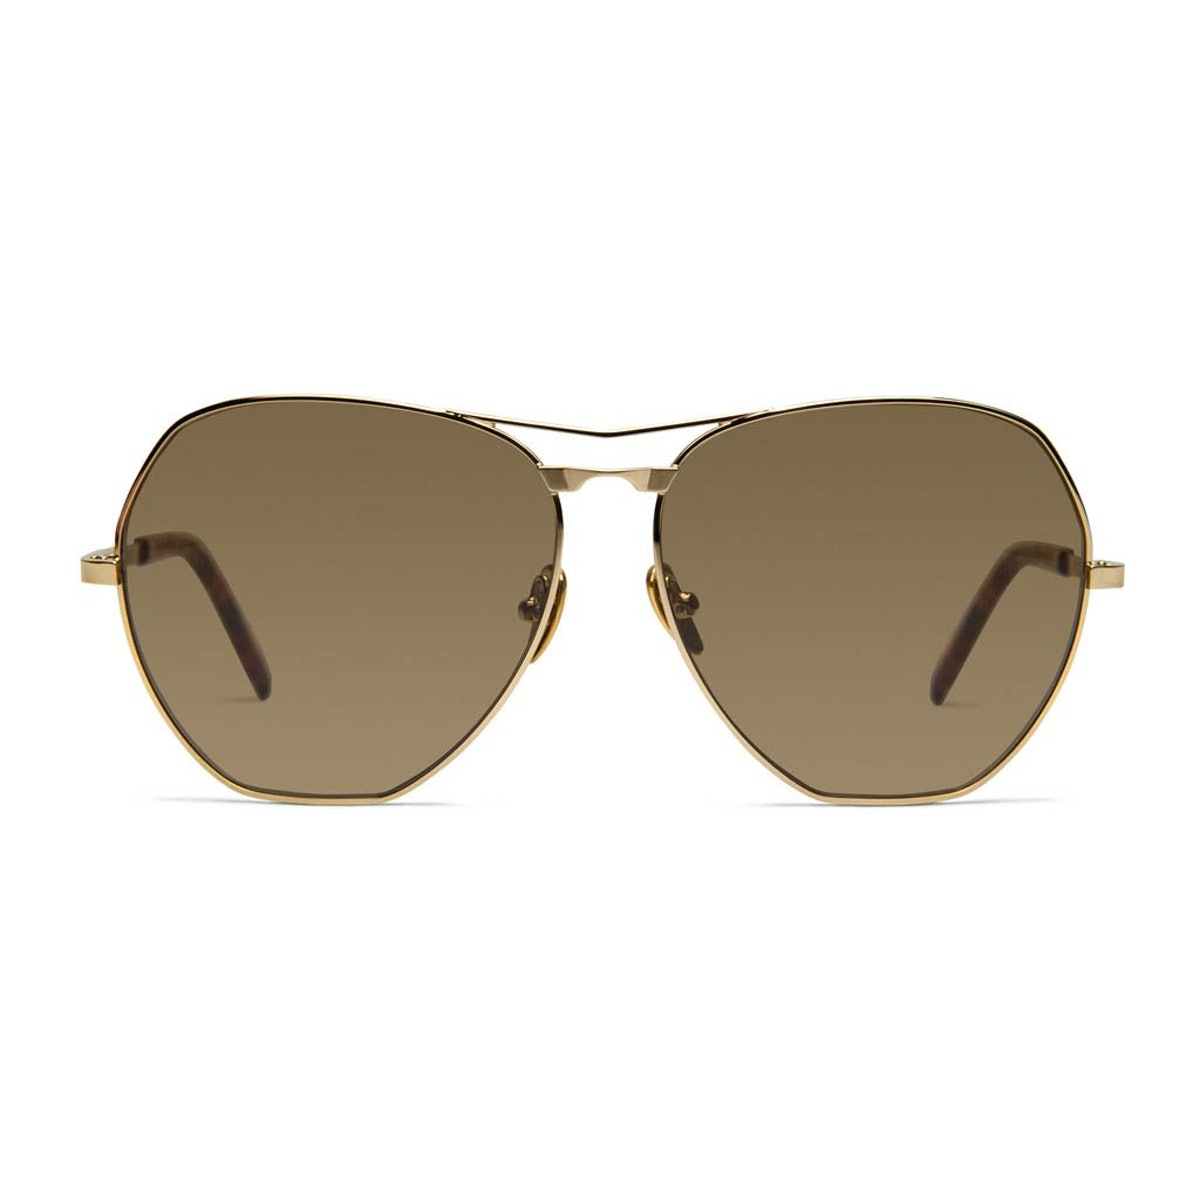 Avatar sunglasses in gold from COCO AND BREEZY.